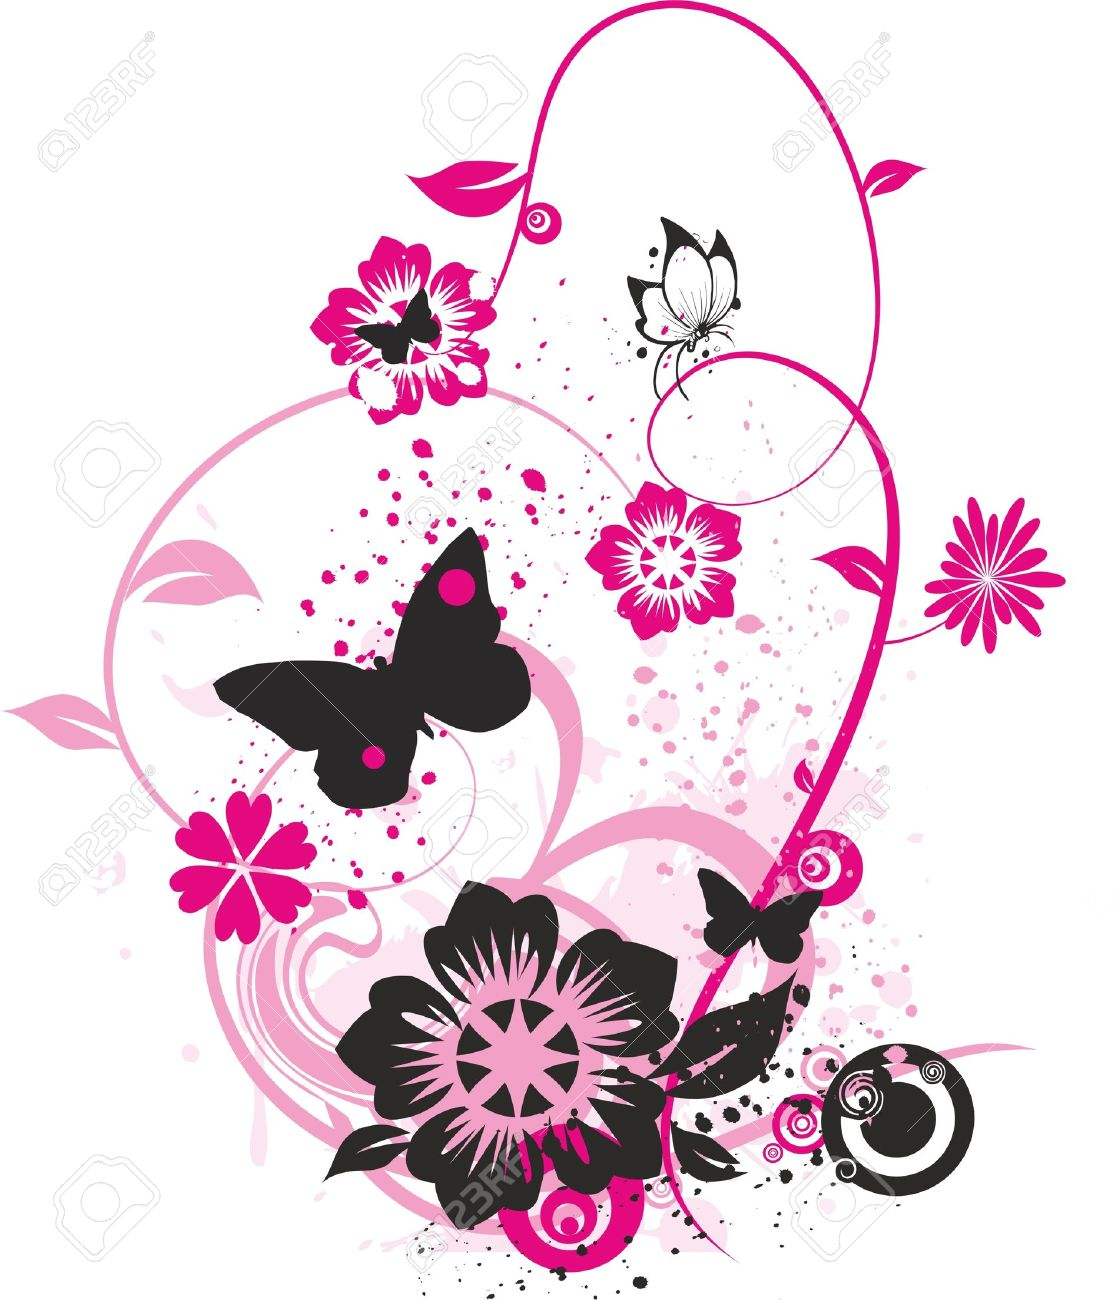 floral design with butterflies flowers and small circles colored